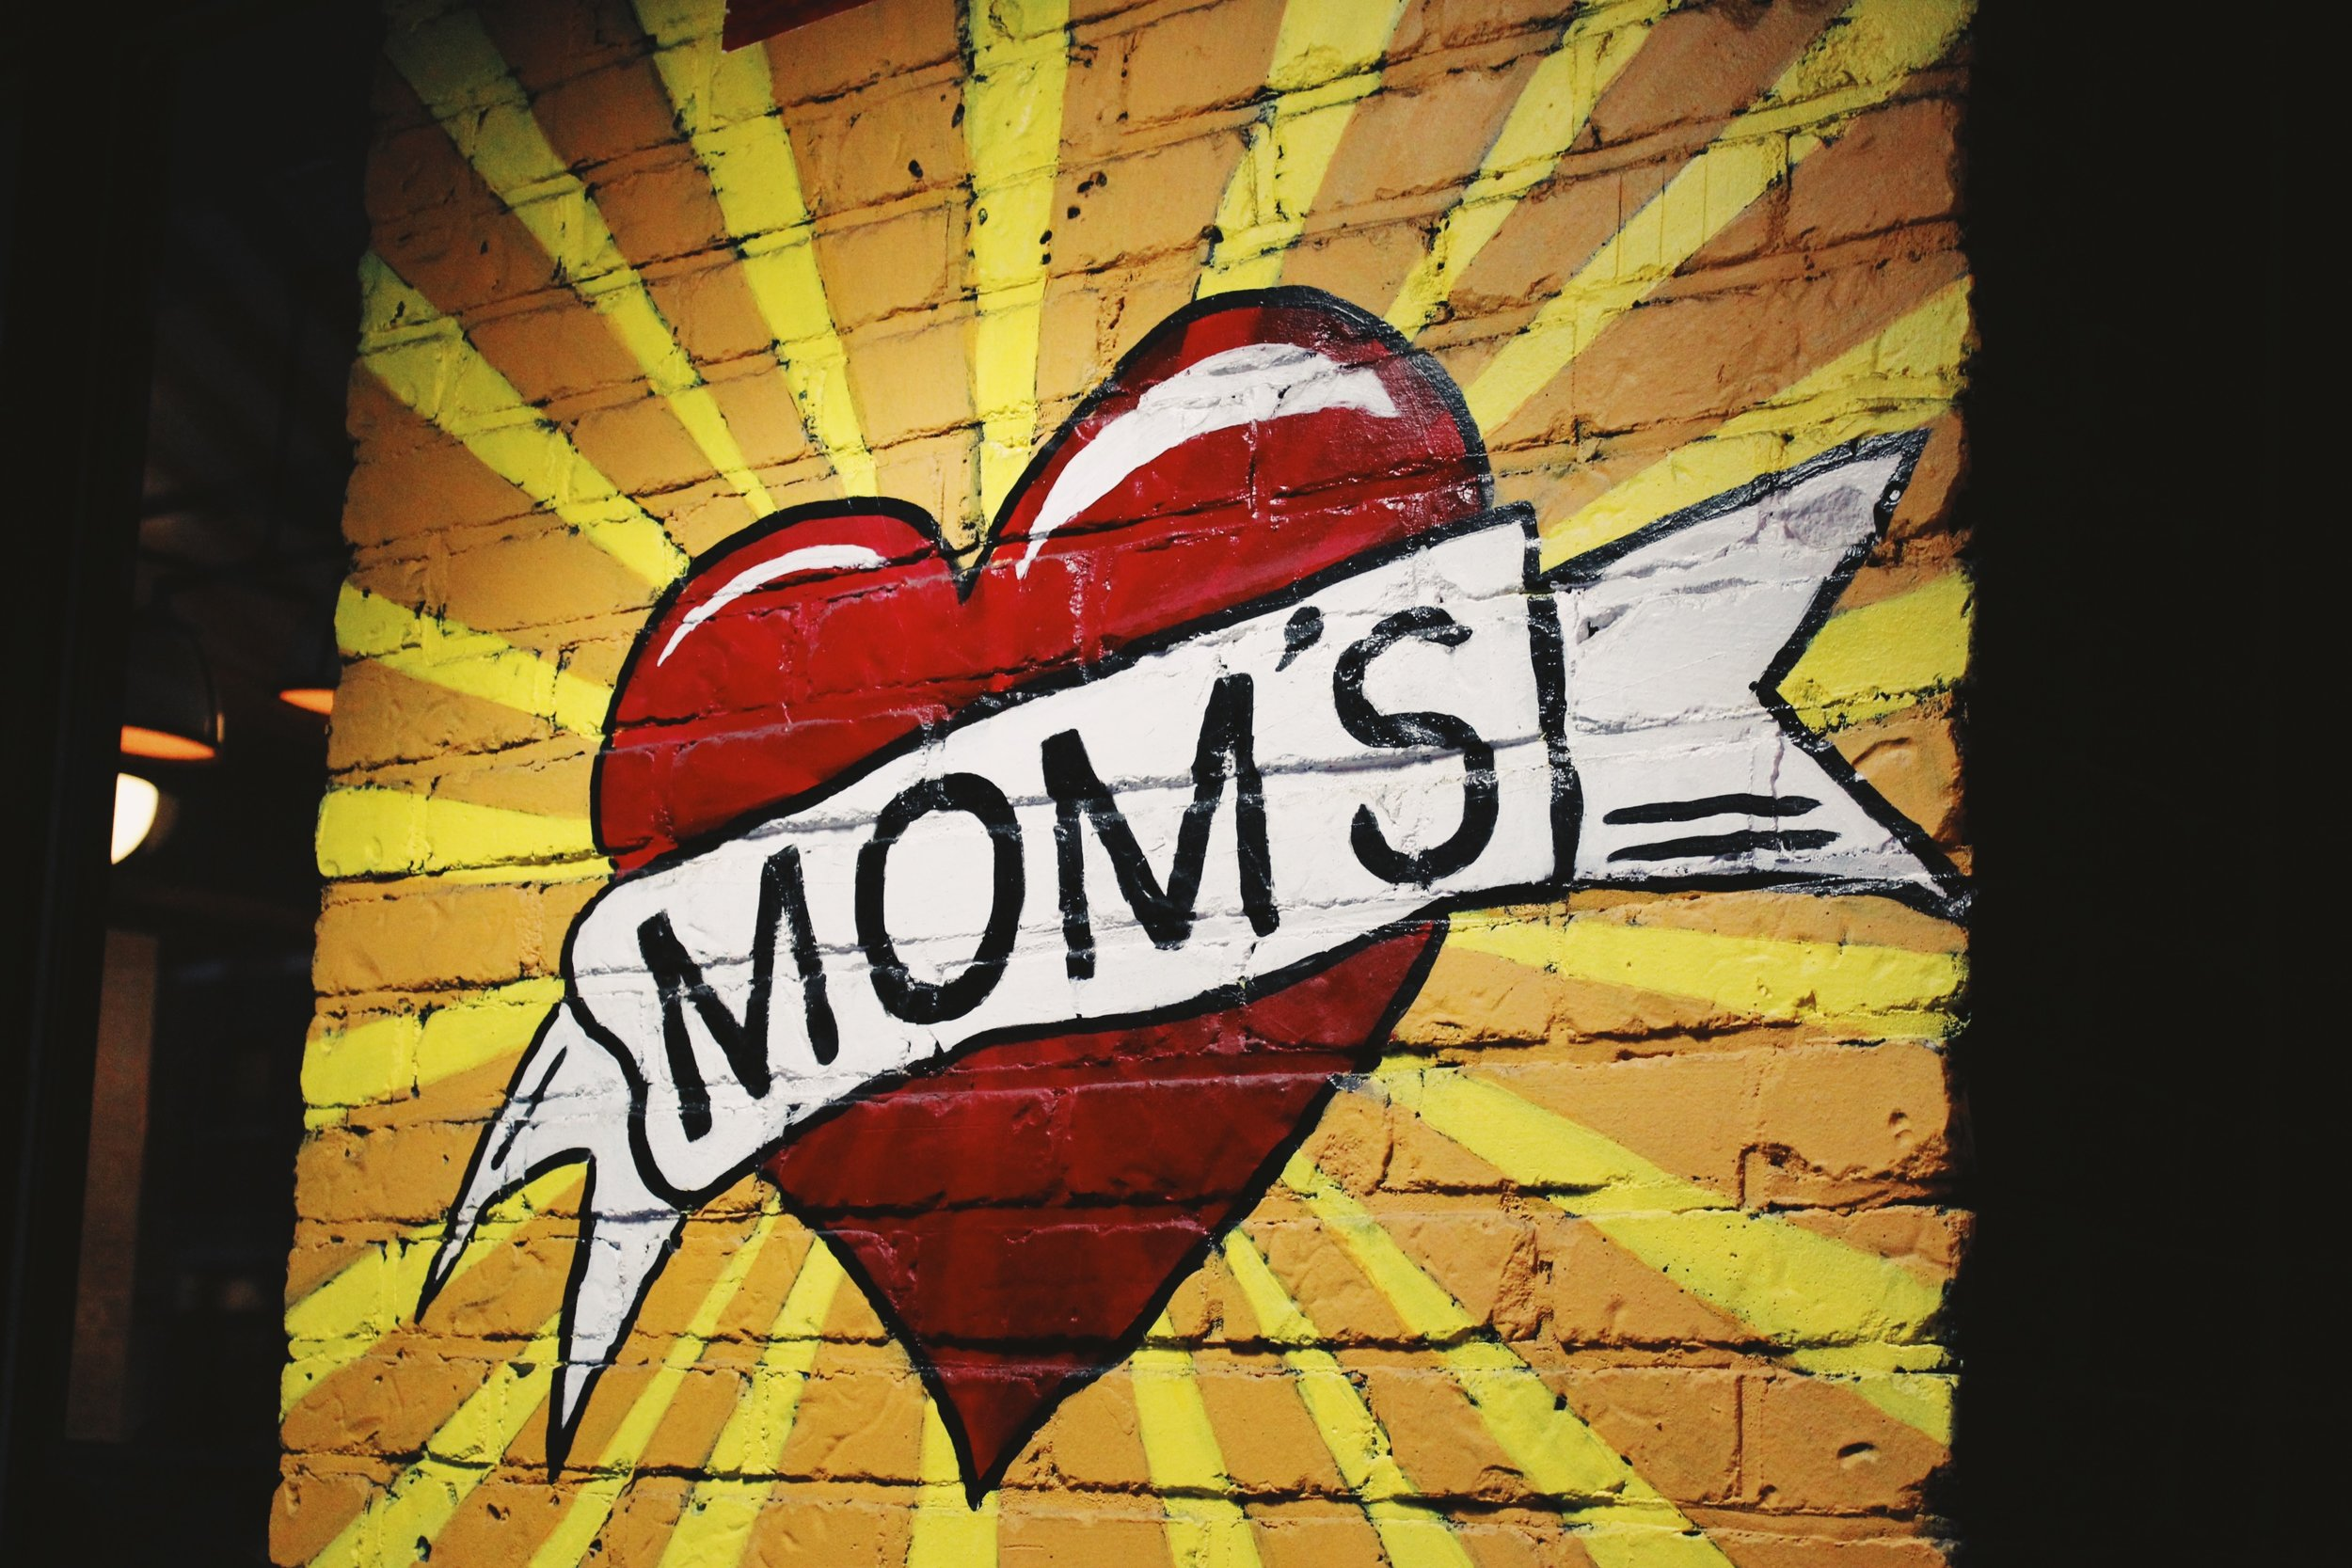 Happy Mother's Day! - This weekend only:All 45 minute salt sessions in our Adult Room are just $10.All salt sessions (Salt & Sauna Combo not included) in our Private salt room are just $20!Schedule online or call us @ 302.650.1787